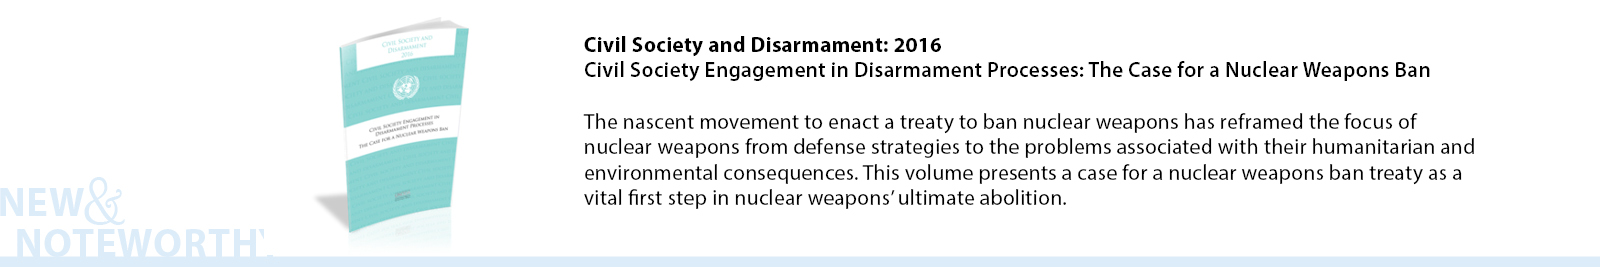 "This publication examines historic, strategic, humanitarian and economic aspects of general and complete disarmament to elaborate and elevate the case for prohibiting conventional weapons systems as well as nuclear weapons. The articles were originally presented at the seminar in New York on 21 October 2015 entitled ""Comprehensive Approaches for Disarmament in the Twenty-first Century: Rethinking General and Complete Disarmament""."